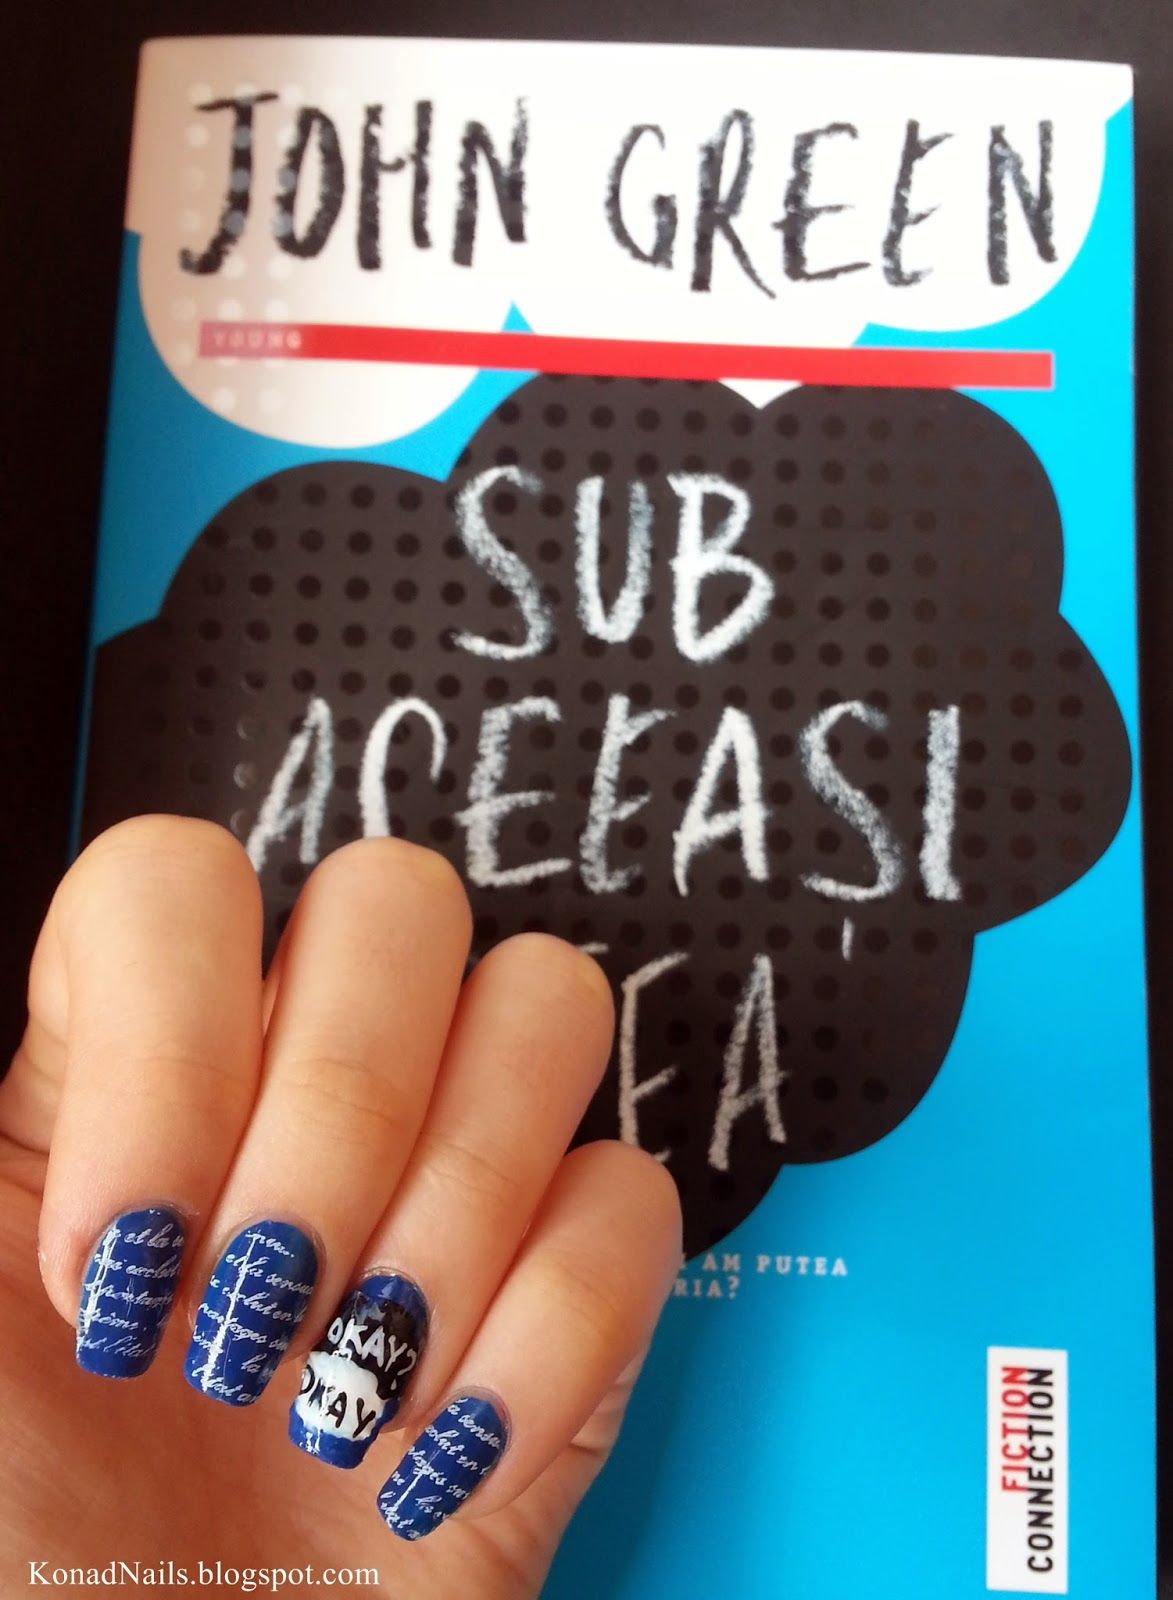 The Fault In Our Stars nail art | Expensive Nails | Pinterest ...